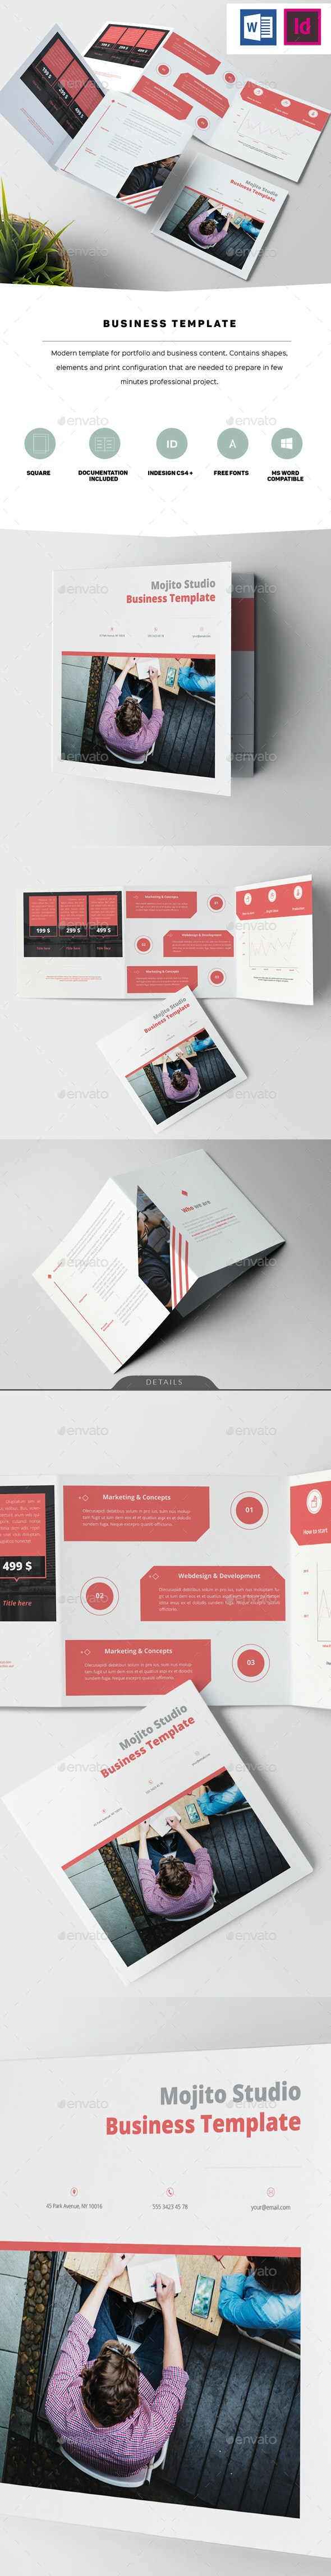 Square Business Template - Informational Brochures